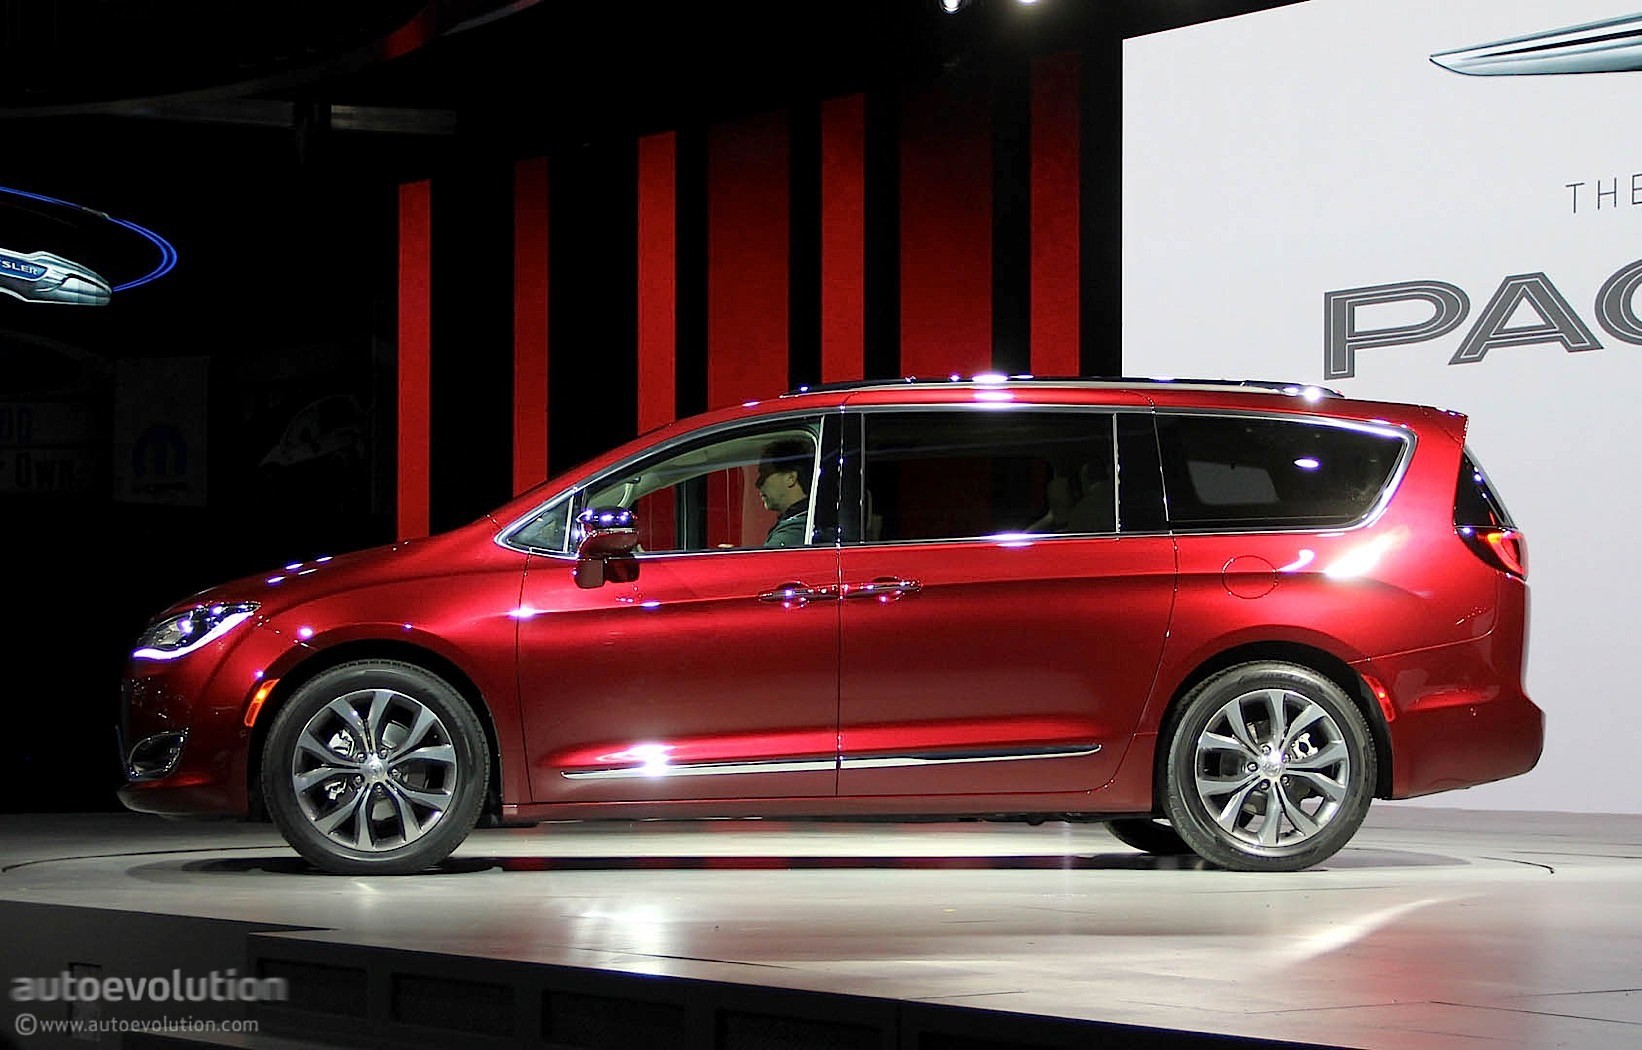 chrysler pacifica minivan unveiled is more than a rebadged town country autoevolution. Black Bedroom Furniture Sets. Home Design Ideas